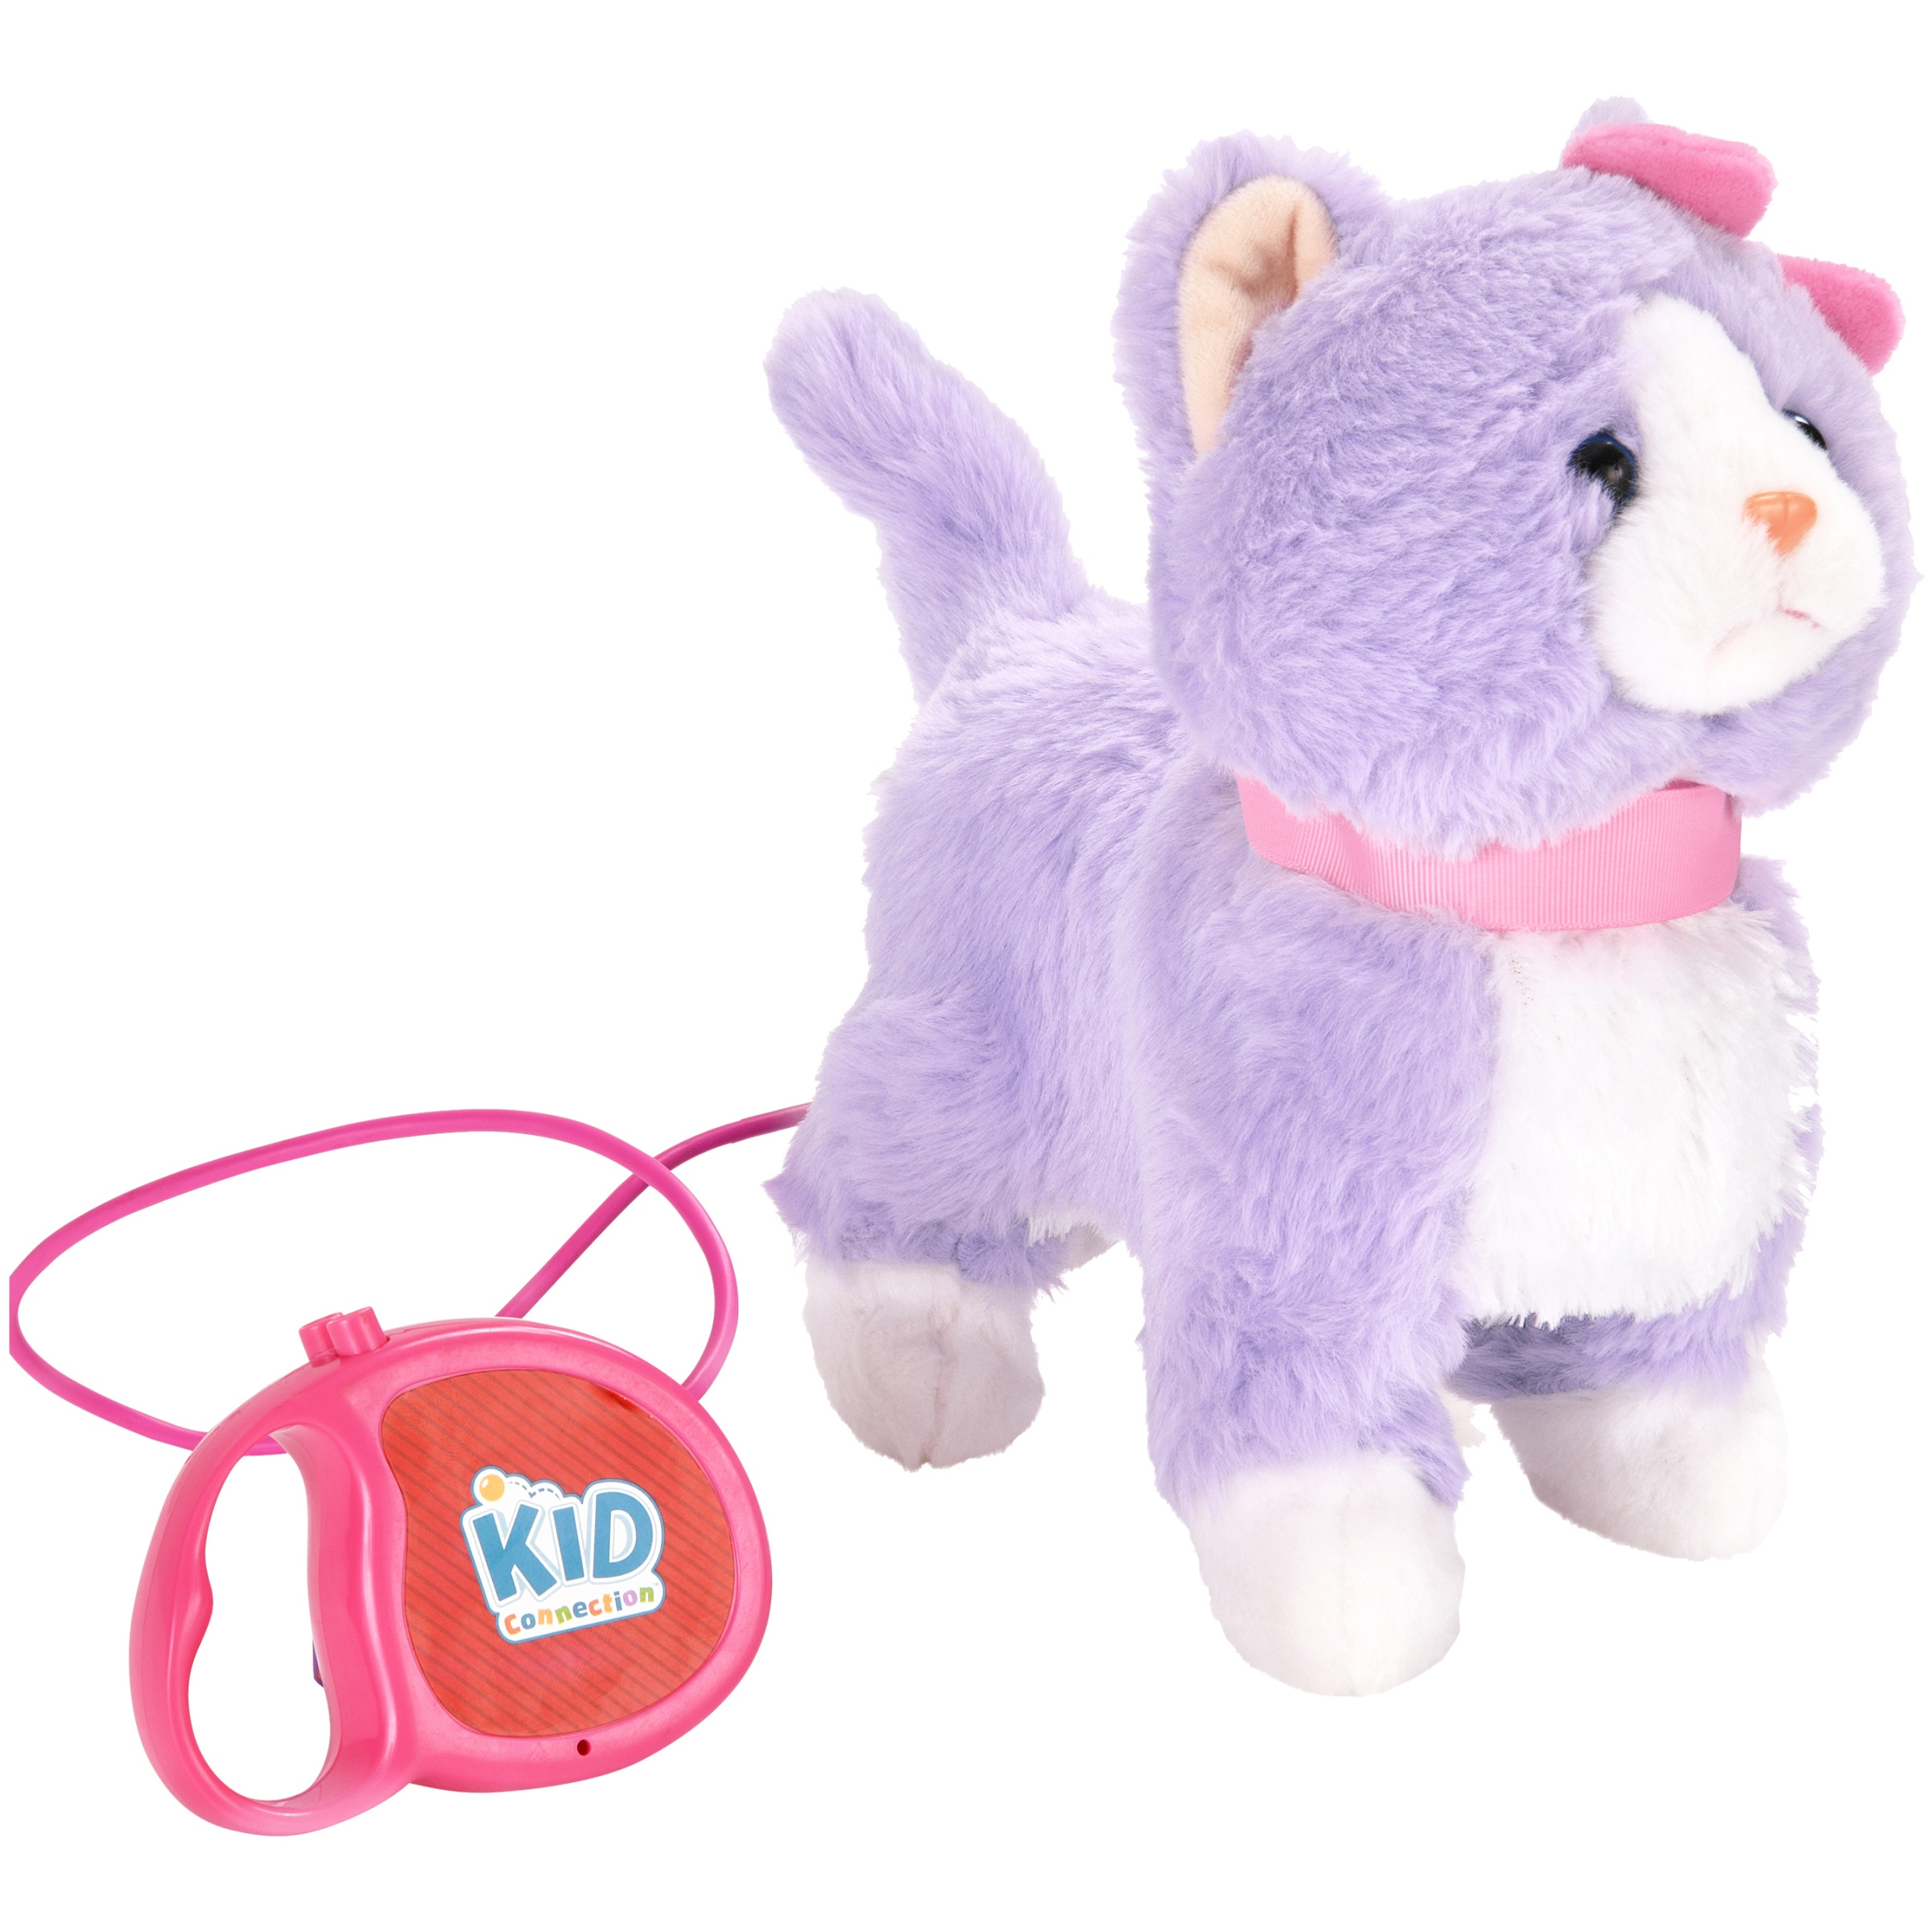 "Kid Connection 9"" Plush Cat Walking Pet, Purple & White with Pink Collar"